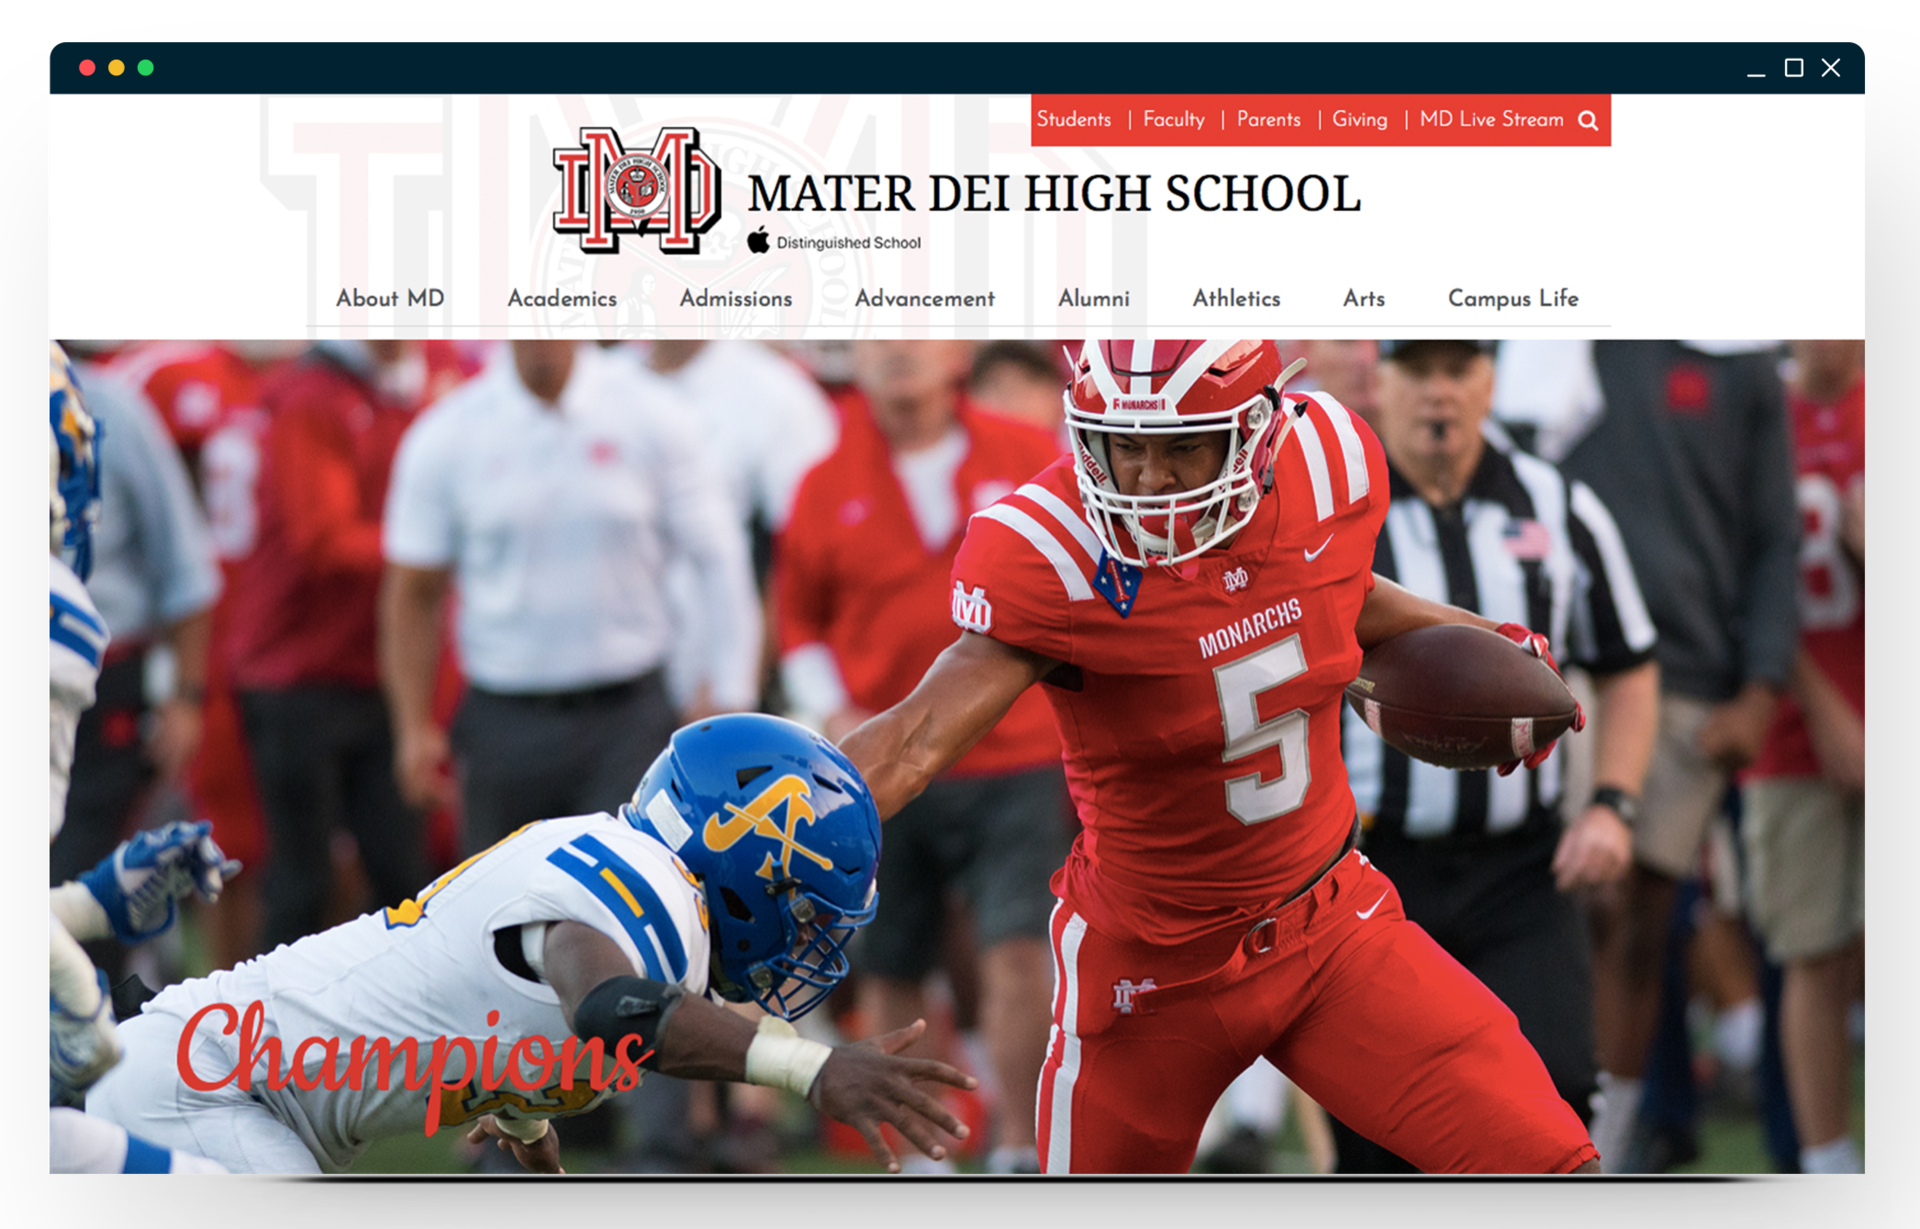 mater dei high school's homepage